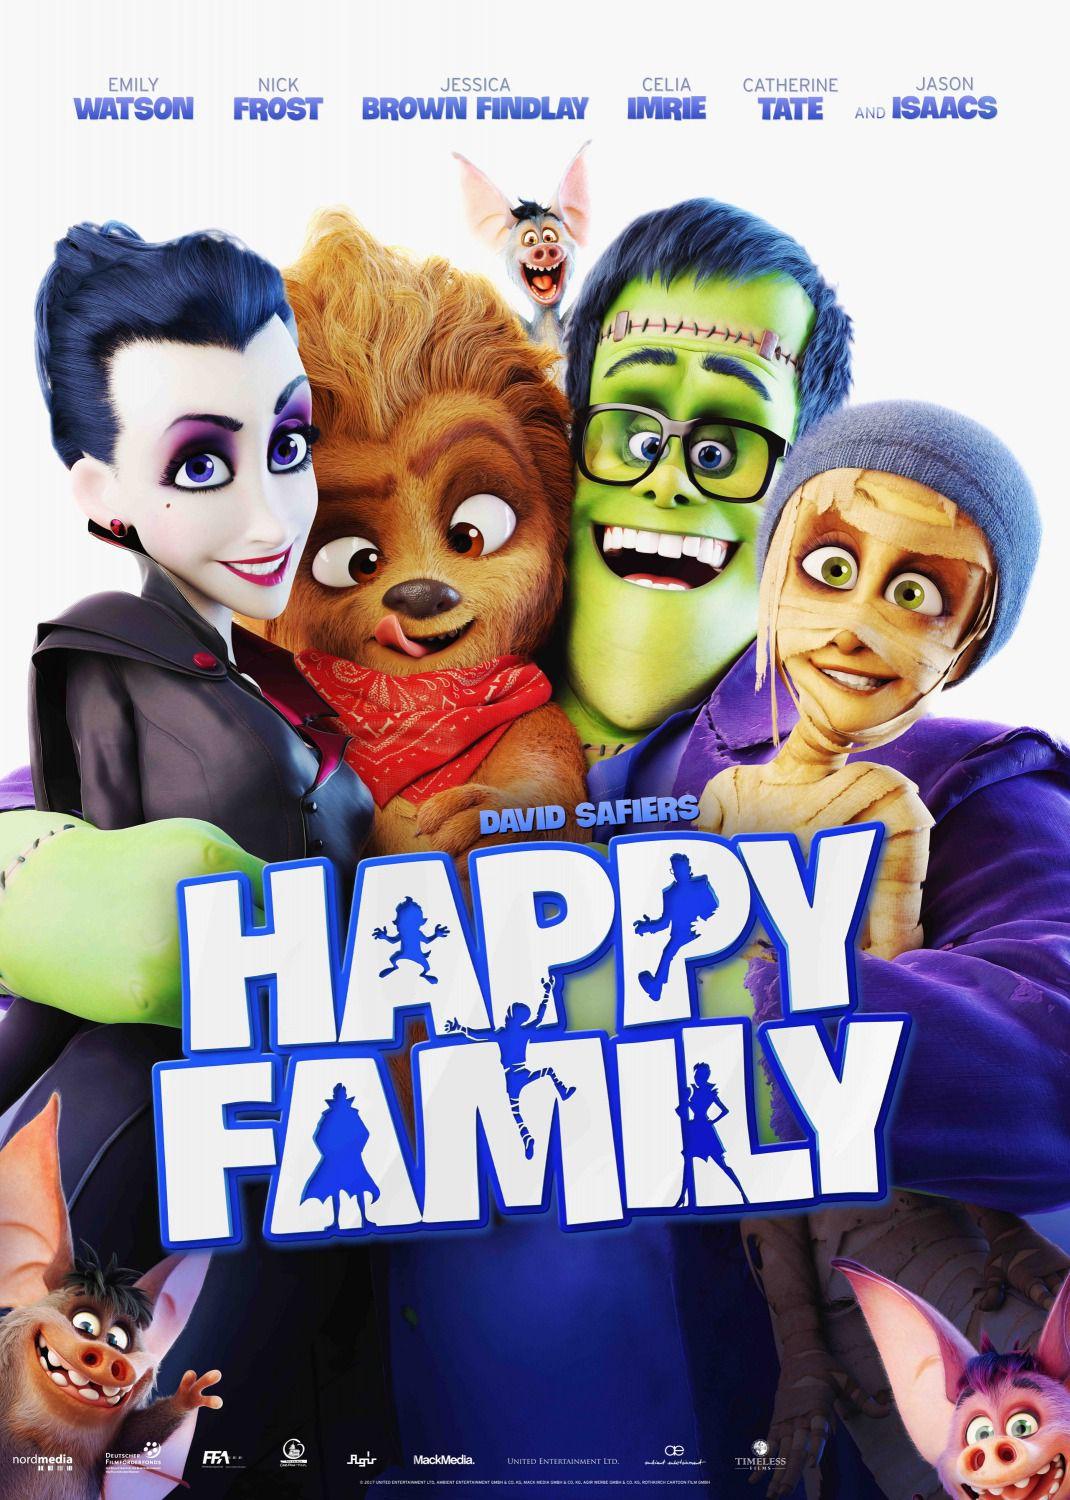 Monster Family - Happy Family - animated film poster